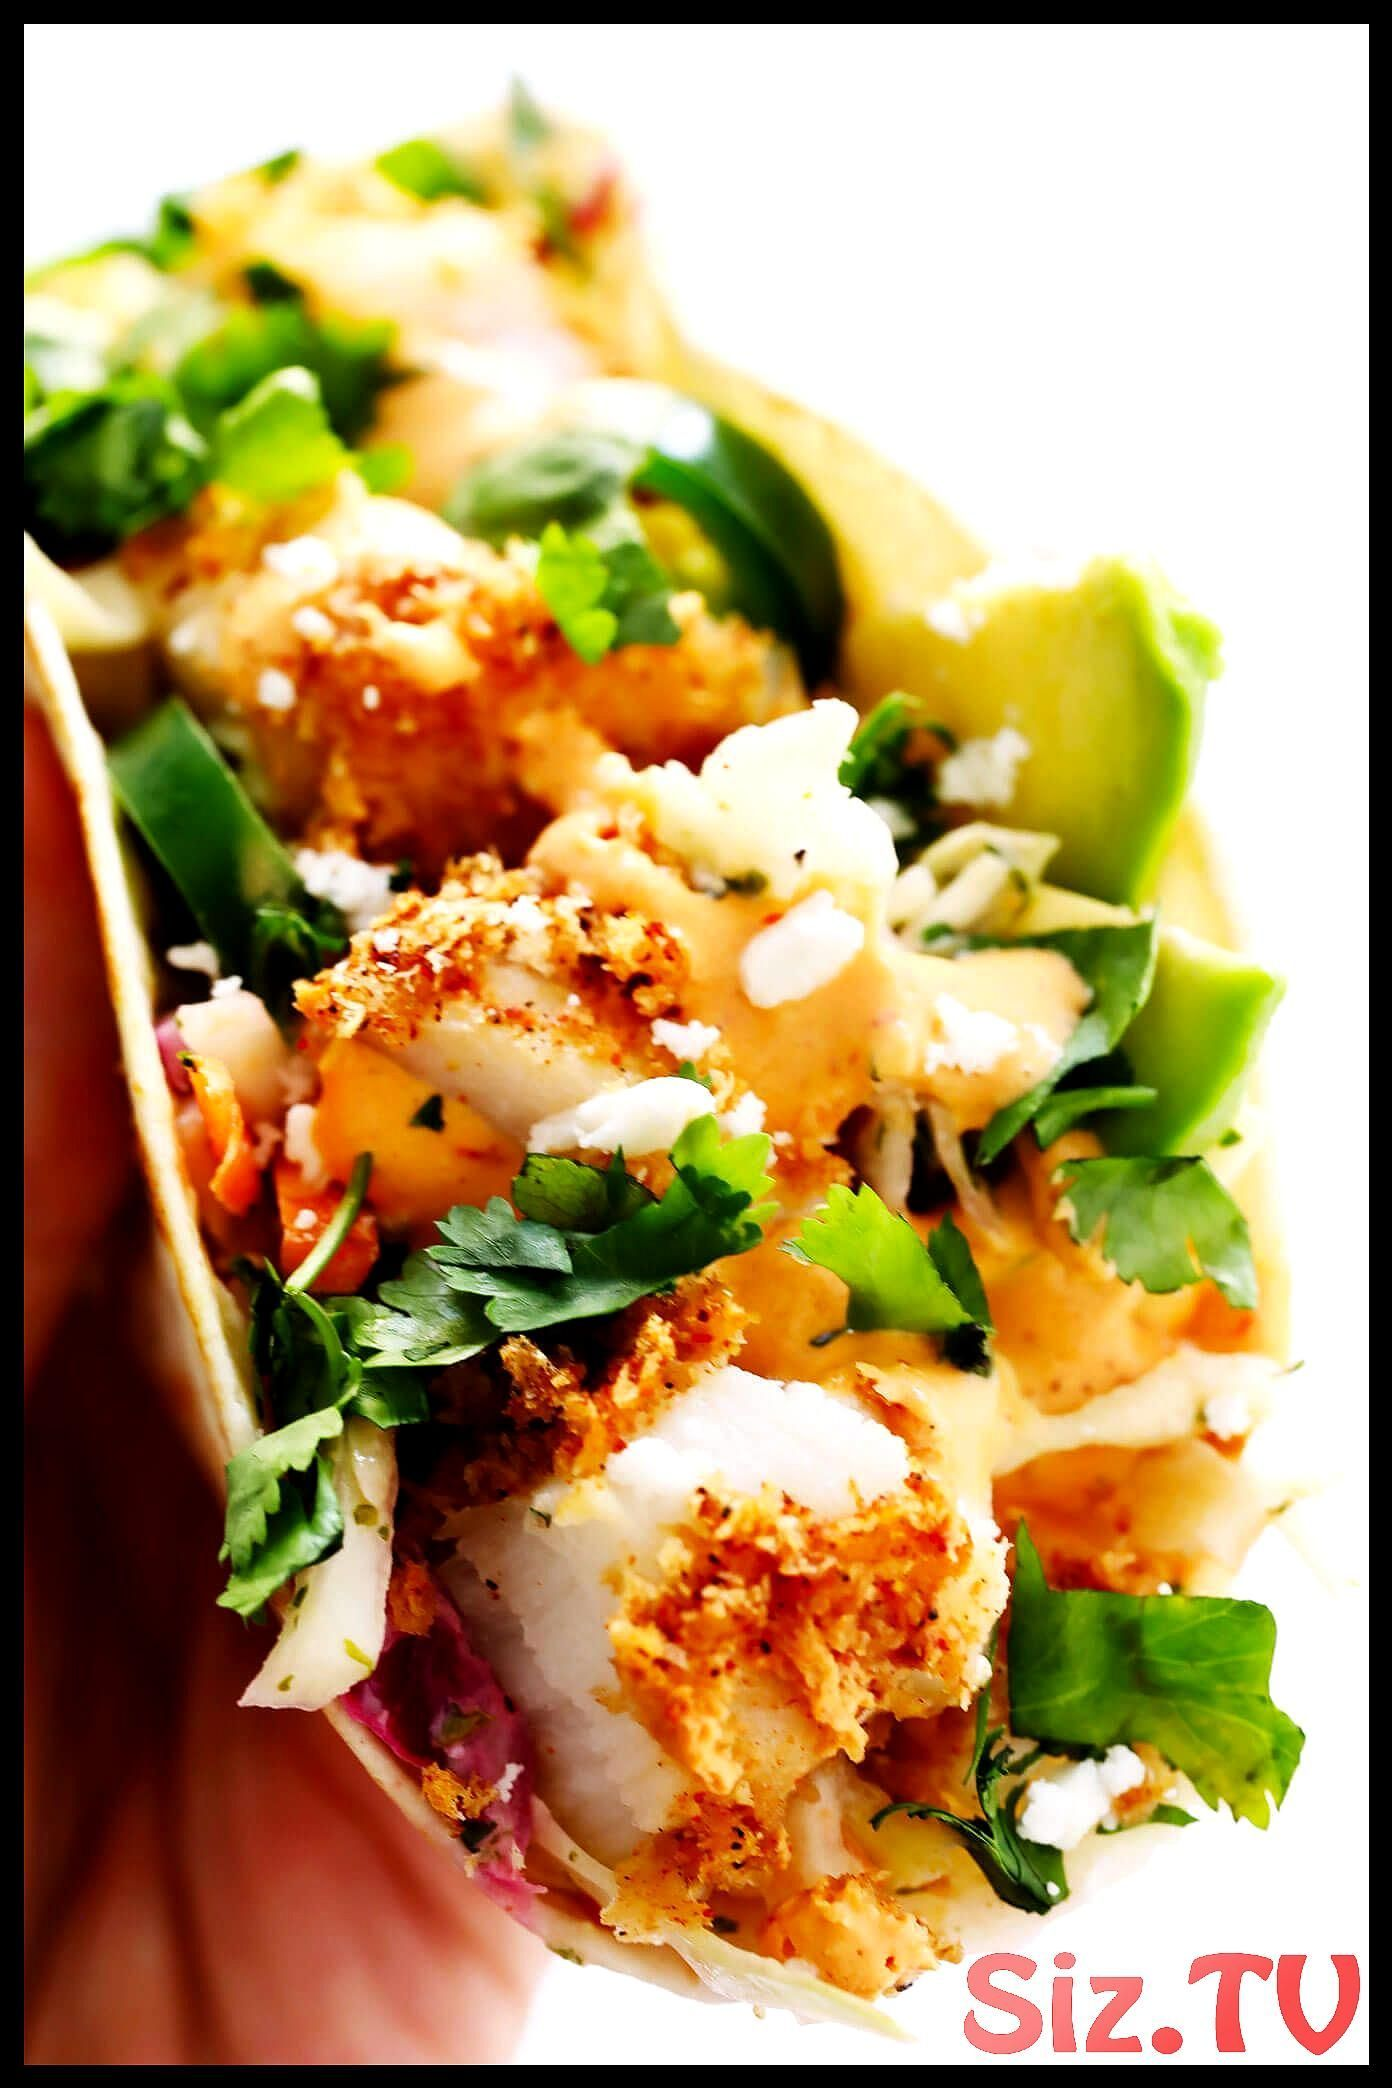 Changing Crispy Baked Fish Tacos Life Changing Crispy Baked Fish Tacos This Crispy Baked Fish Tacos Recipe Is Made With The Yummiest Panko Crusted Fish Zesty Cilantro Lime Slaw A Super Simple Chipotle Crema And Whatever Other Favorite Toppings Hello Avocado You Love Most See Notes Above For Possible IngredientLife Changing Crispy...